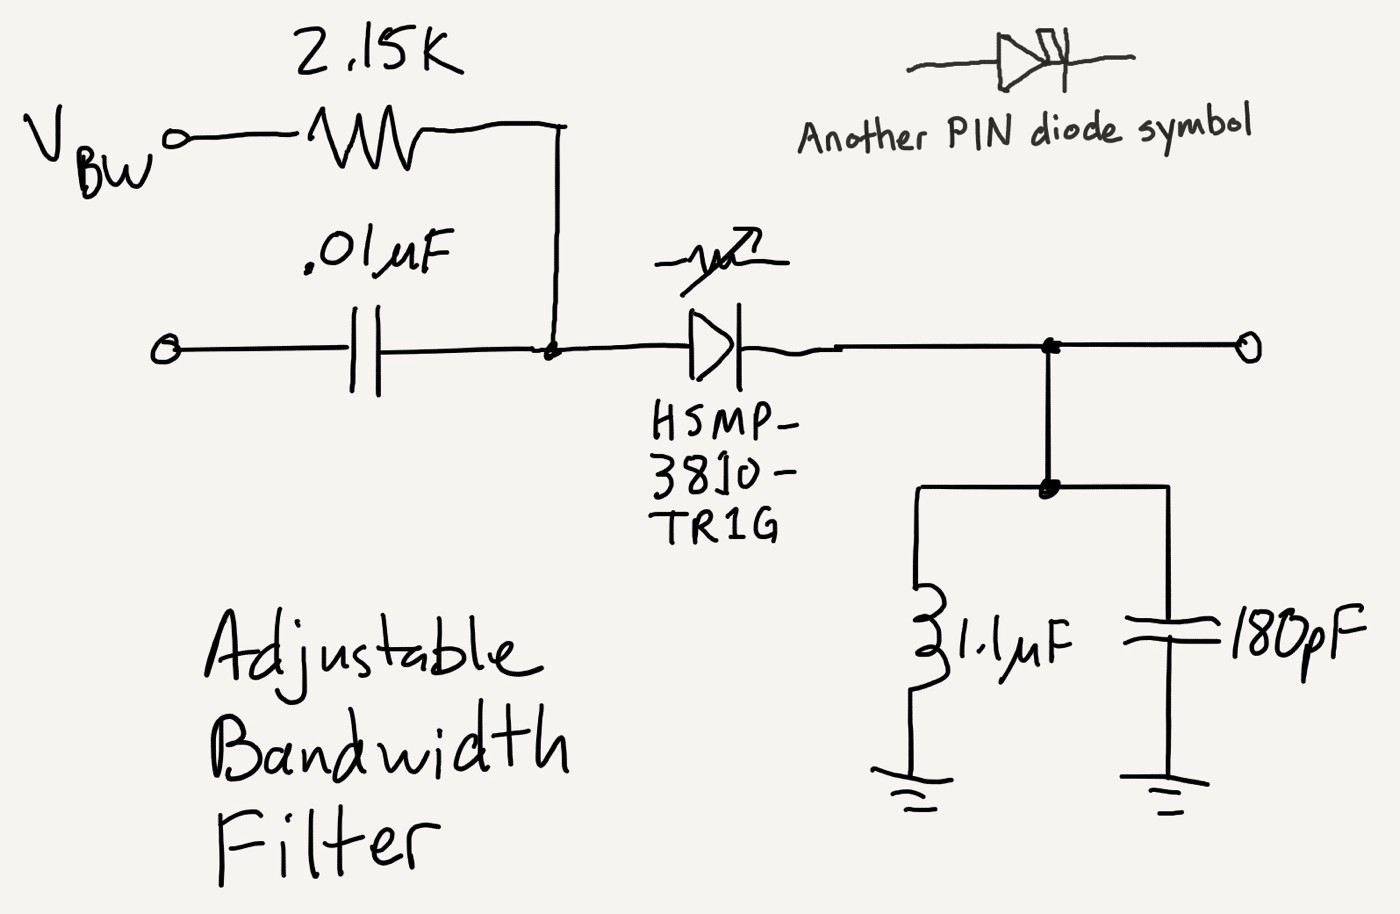 Hello Diodes Tempo Automation Medium Pin On Dc Power Source Schematic Symbol A Variable Resistor Can Be Used To Create Bandwidth Filter The Resistance Is Set By Current In Diode